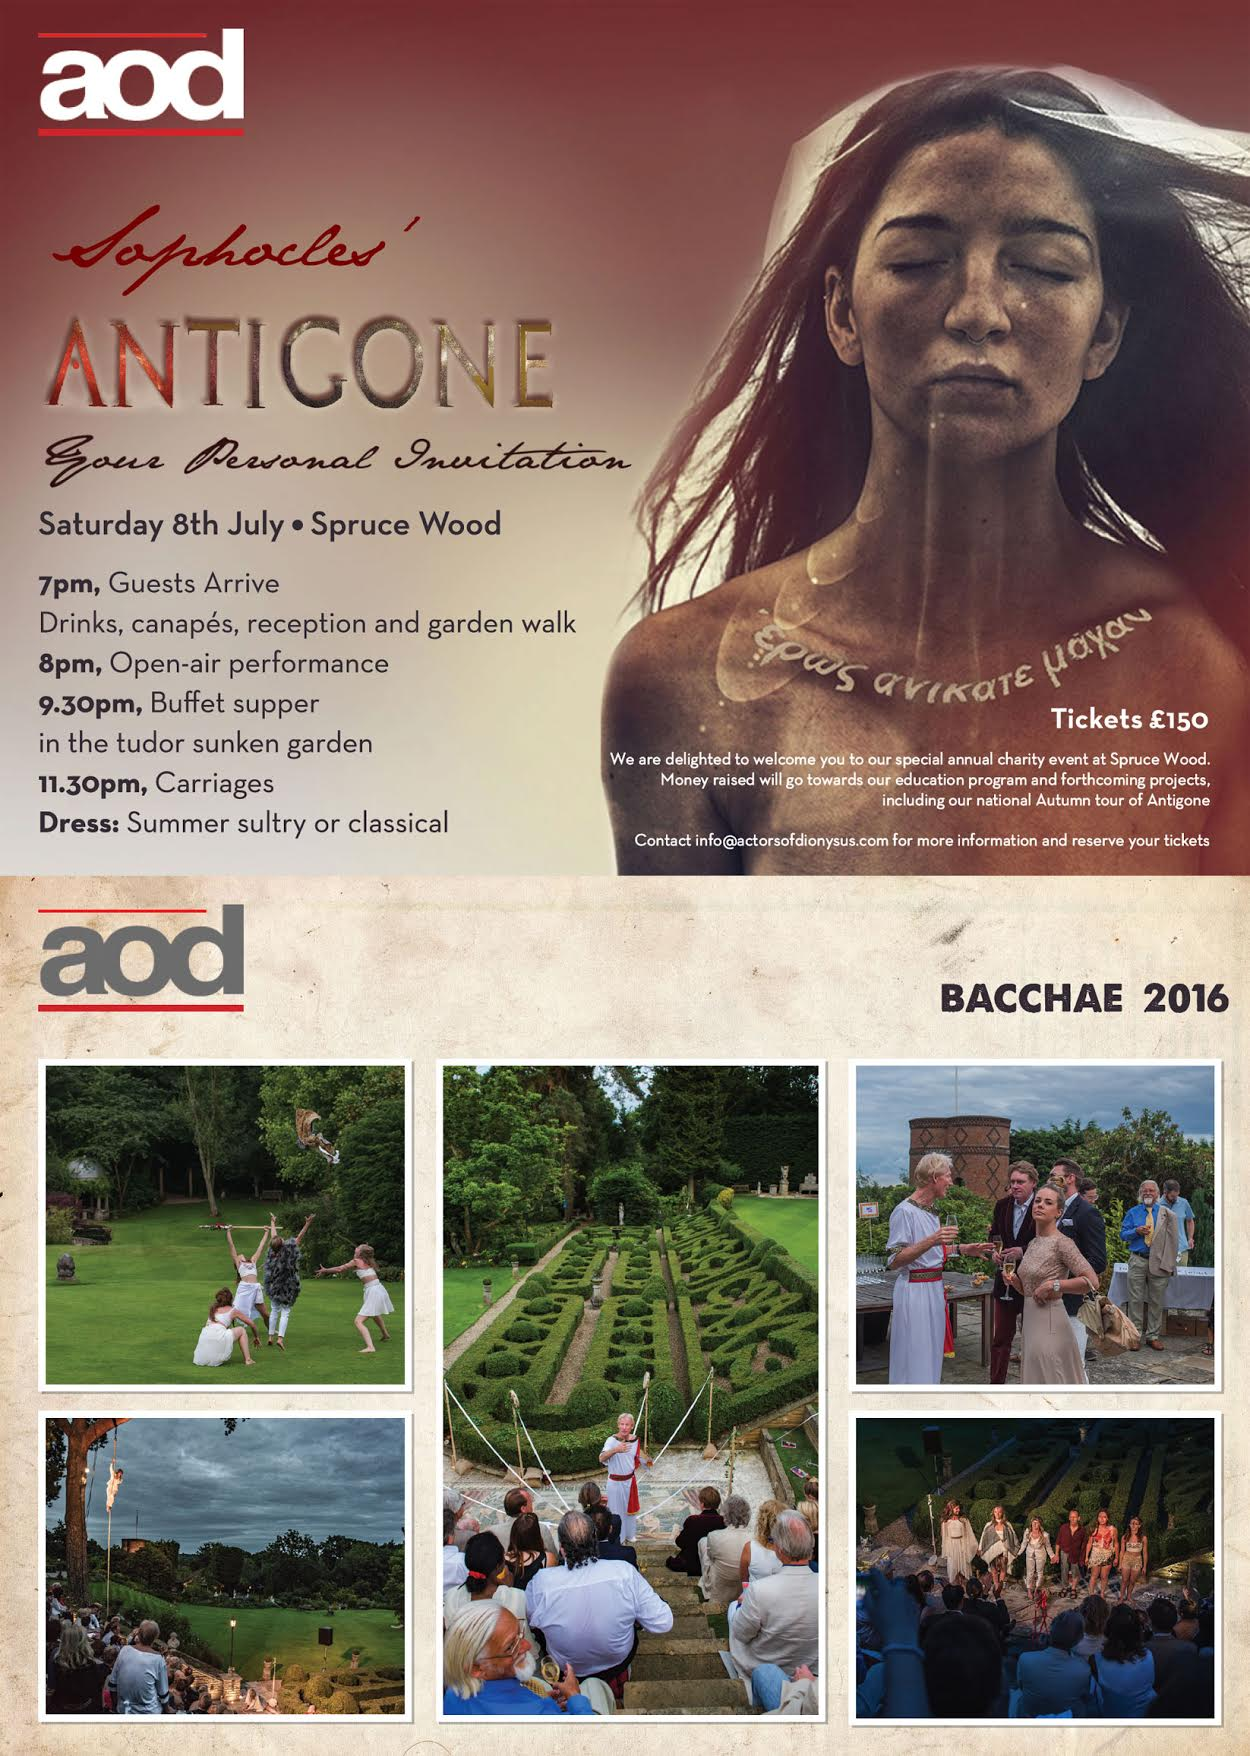 Antigone invite Spruce Wood